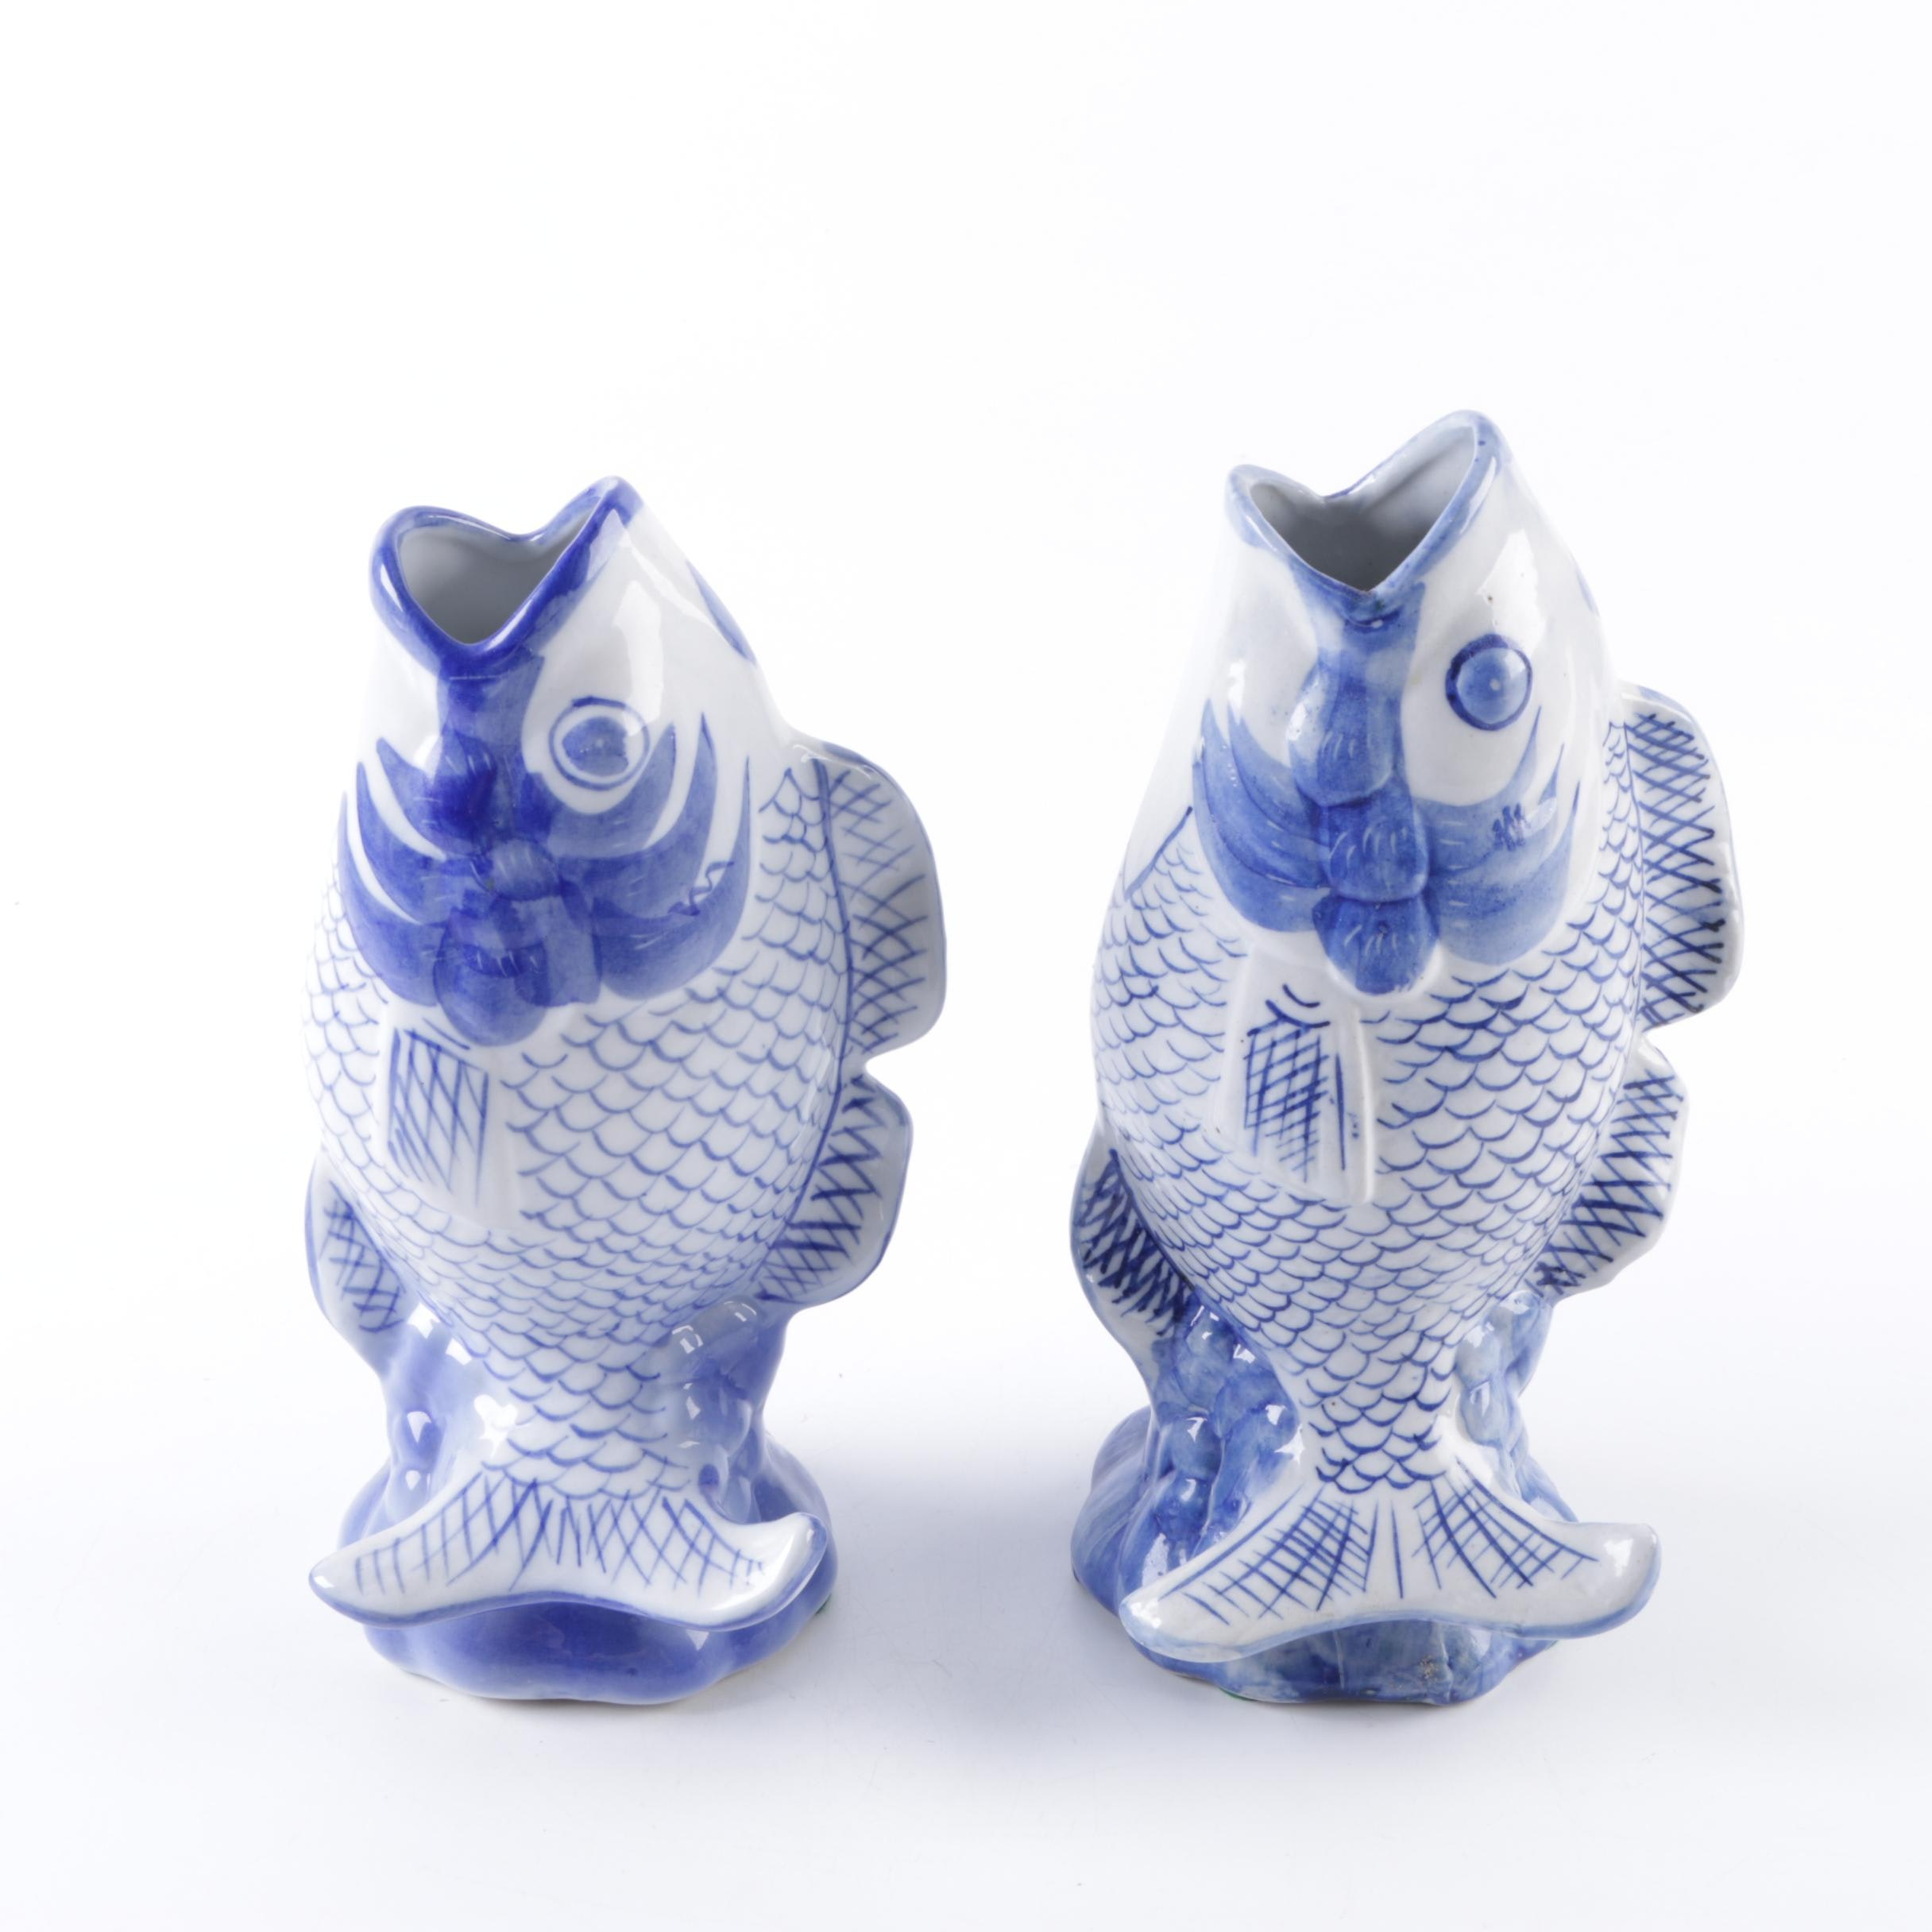 A Pair of Chinese Fish Vases